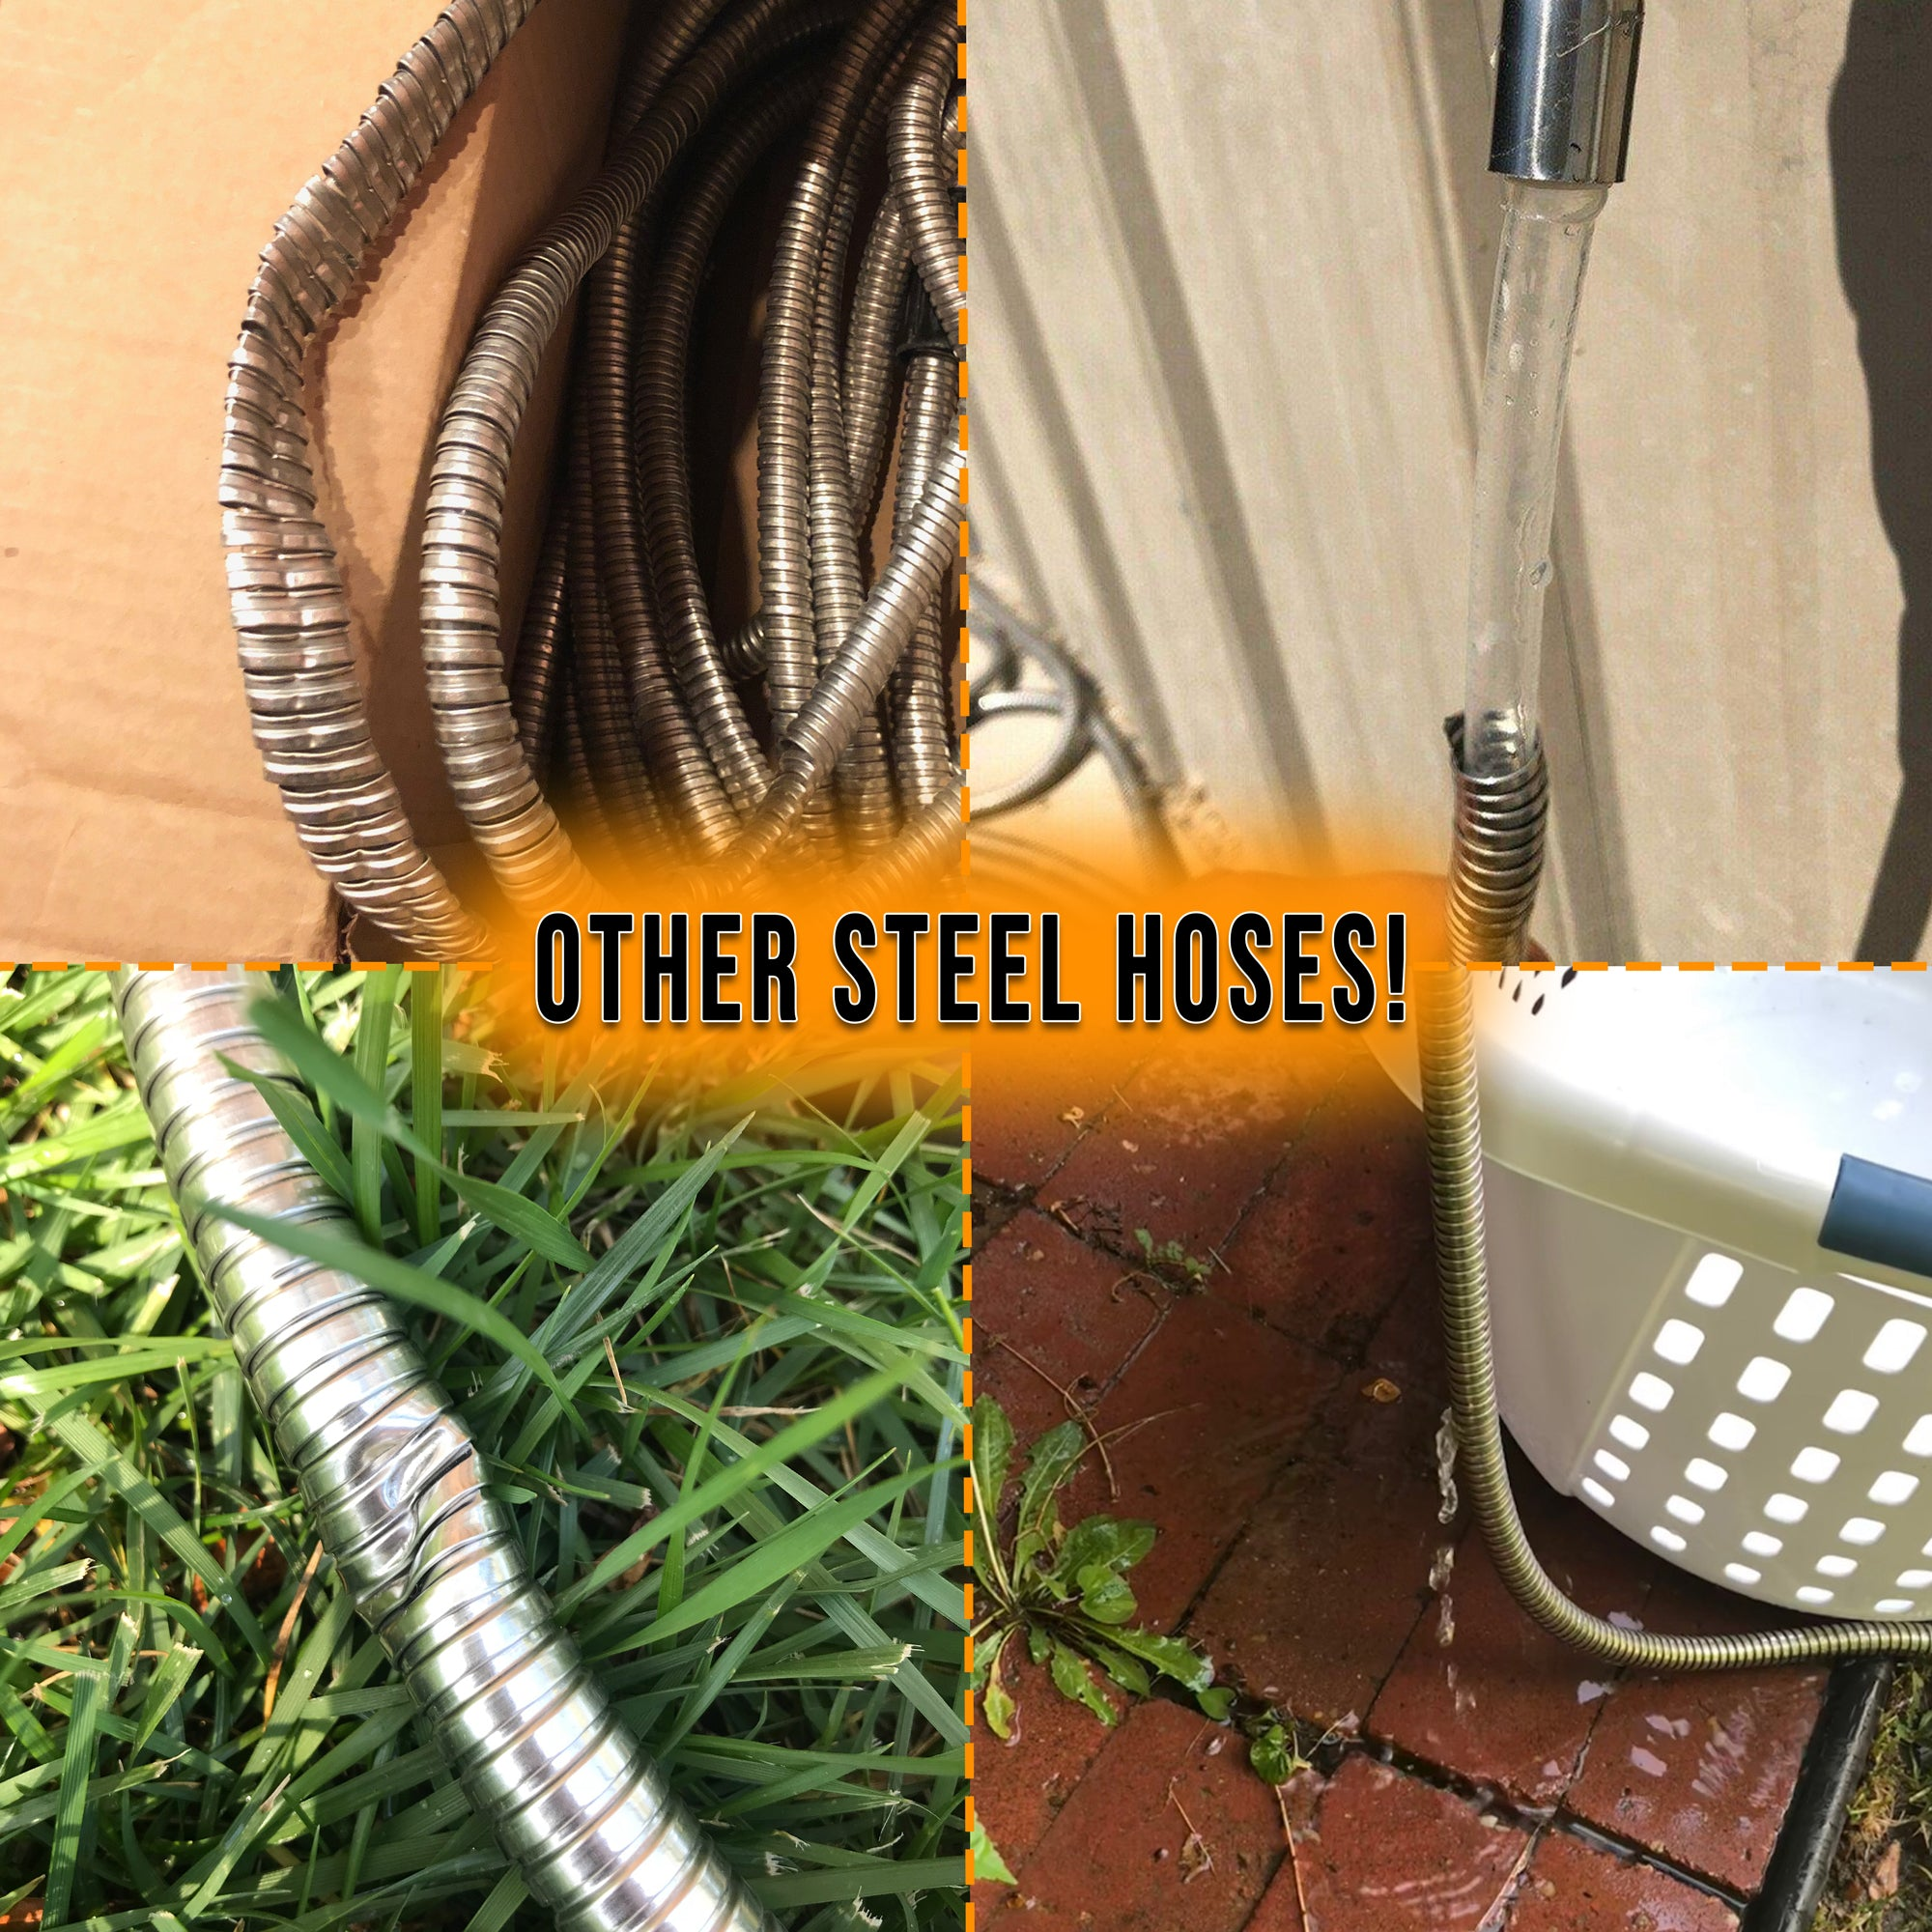 Tardigrade Steel Hose - 25' 304 Stainless Steel Garden Hose - Lightweight, Kink-Free, Strong Heavy Duty, Metal Water Hoses, High Pressure, Durable and Easy to Use